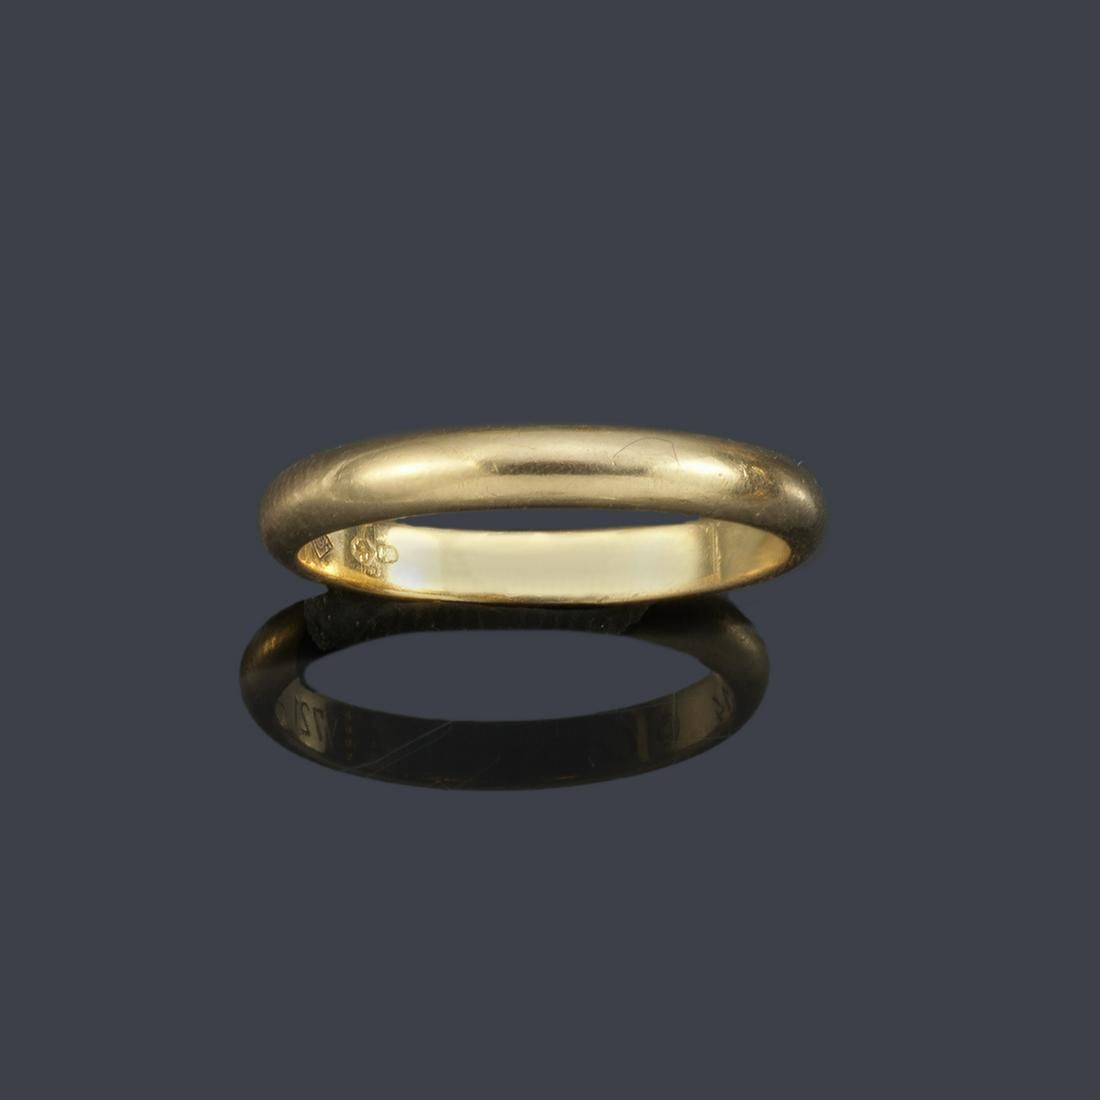 CARTIER 18K yellow gold wedding ring. Signed, with